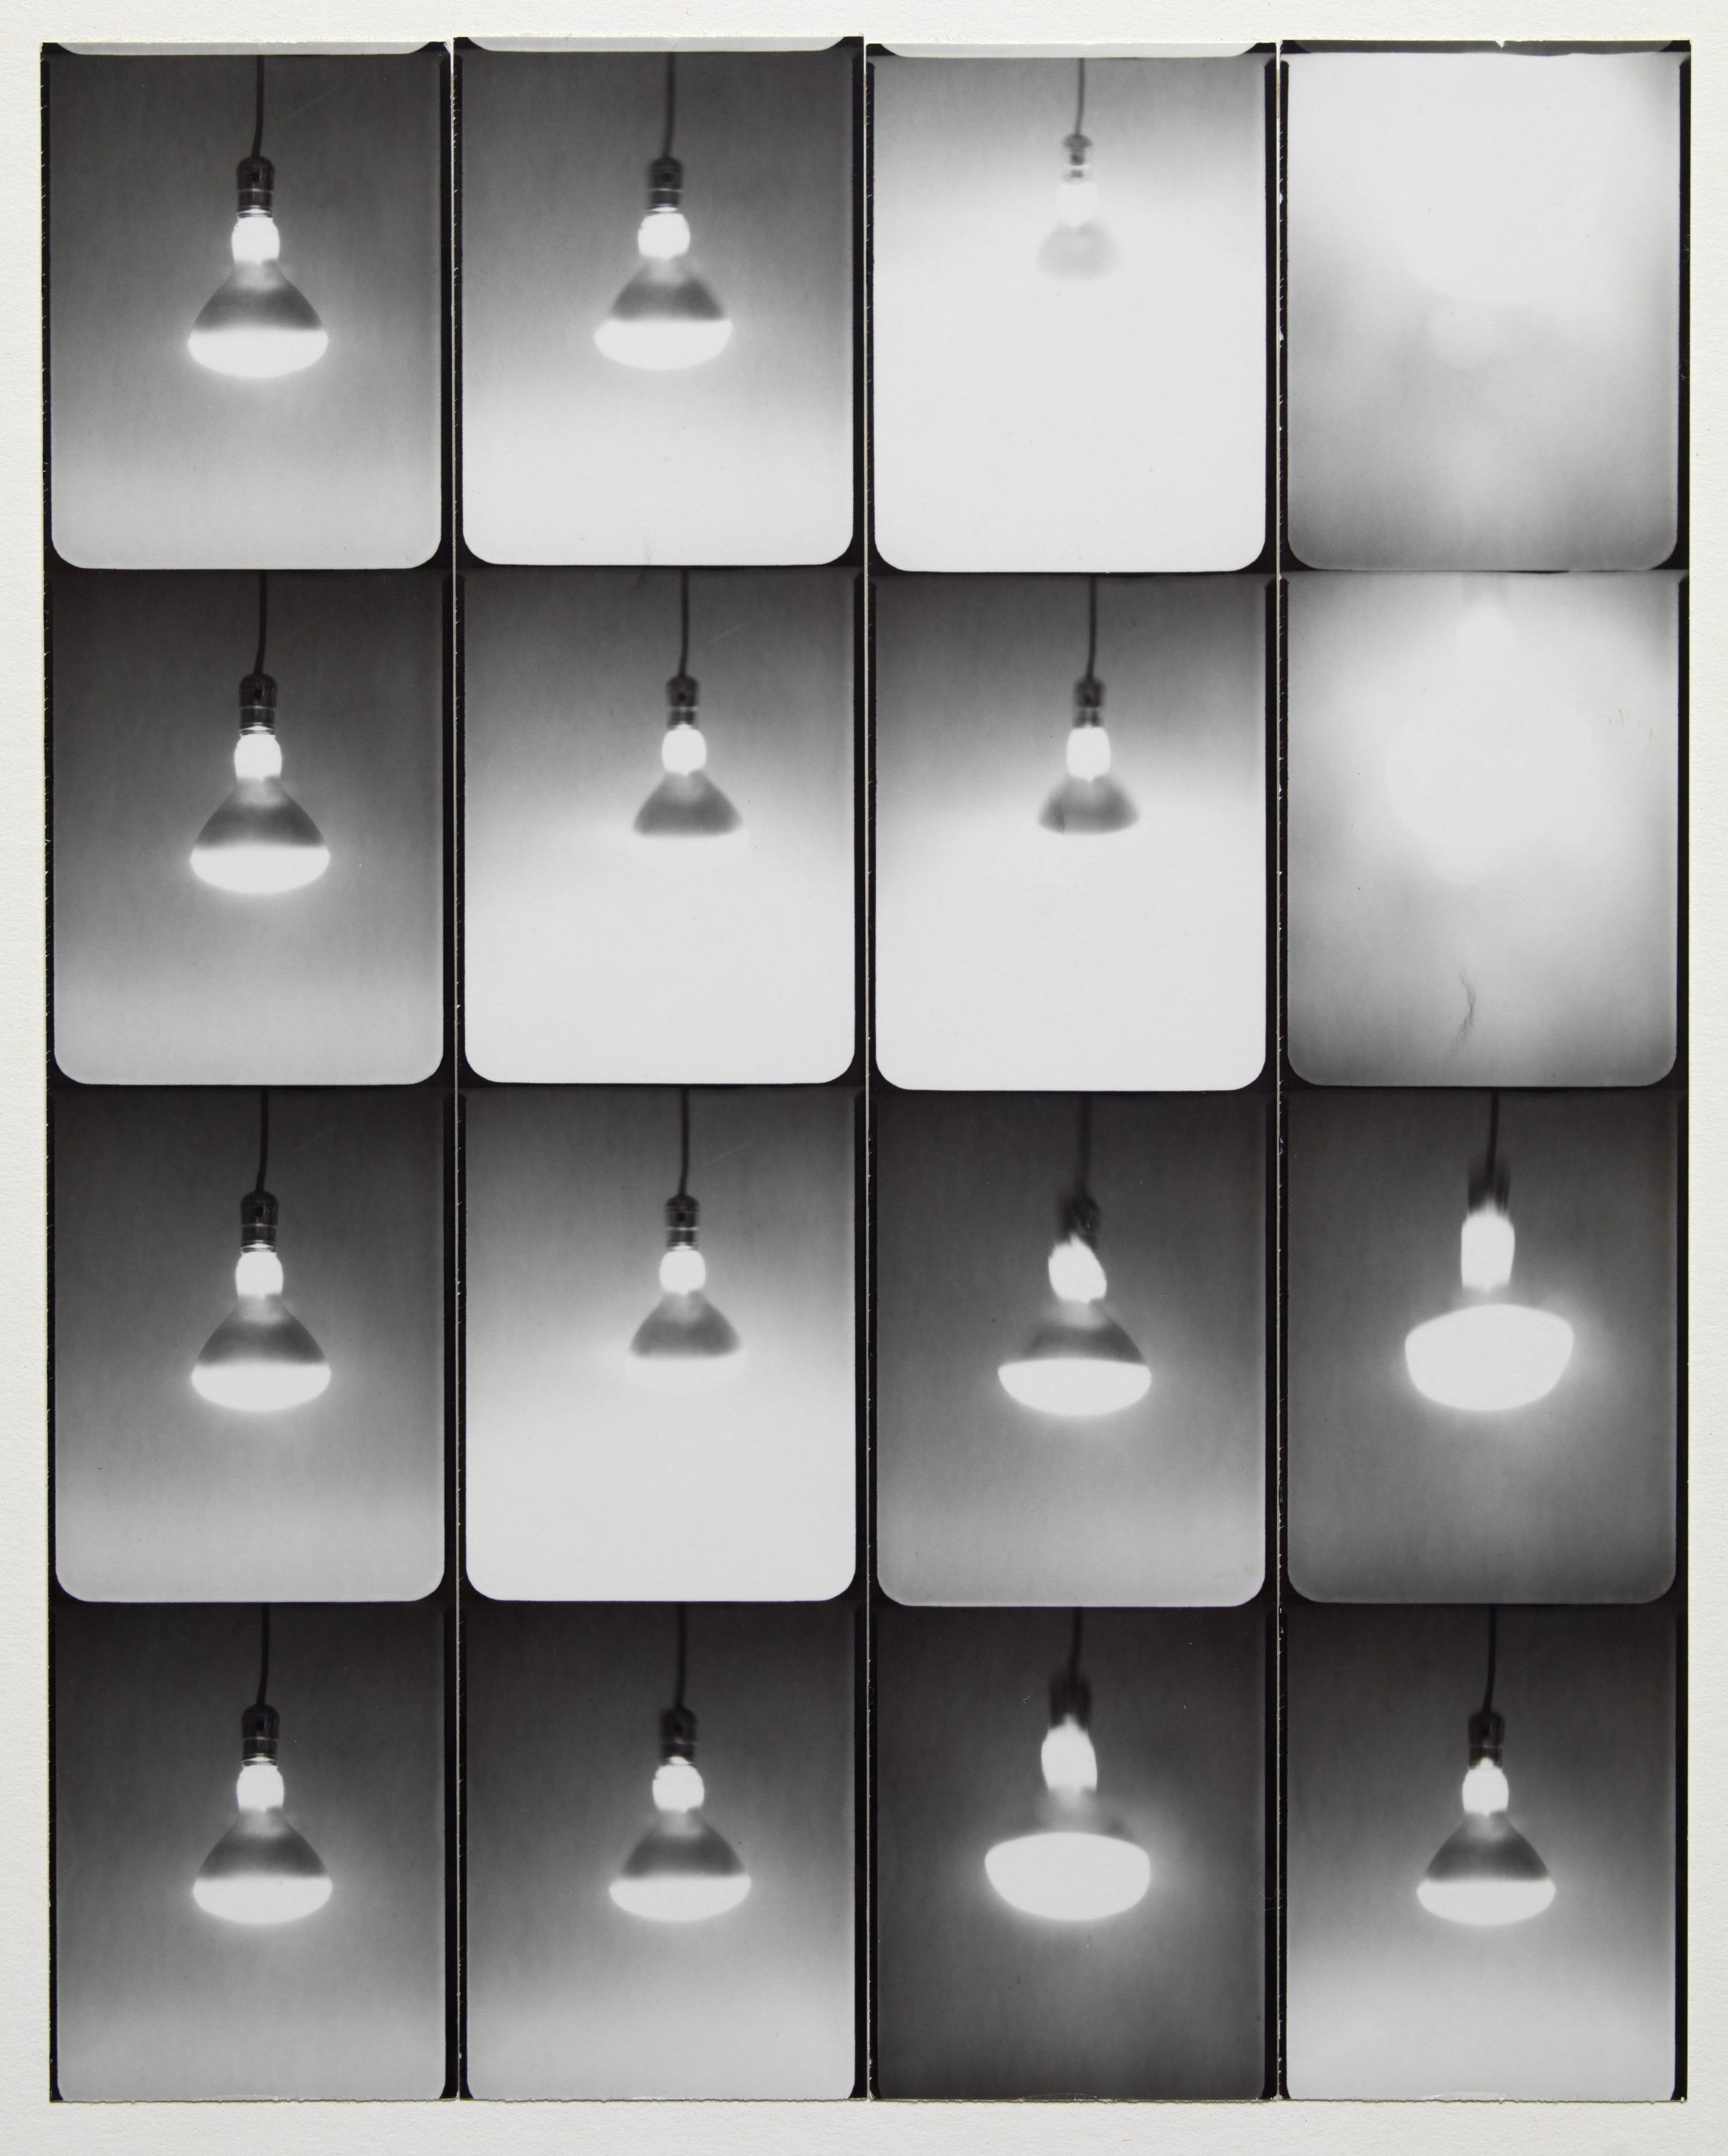 Jared Bark,Untitled, PB #1031, 1974. Vintage gelatin silver photobooth prints, 8 x 6 1/2 inches overall.